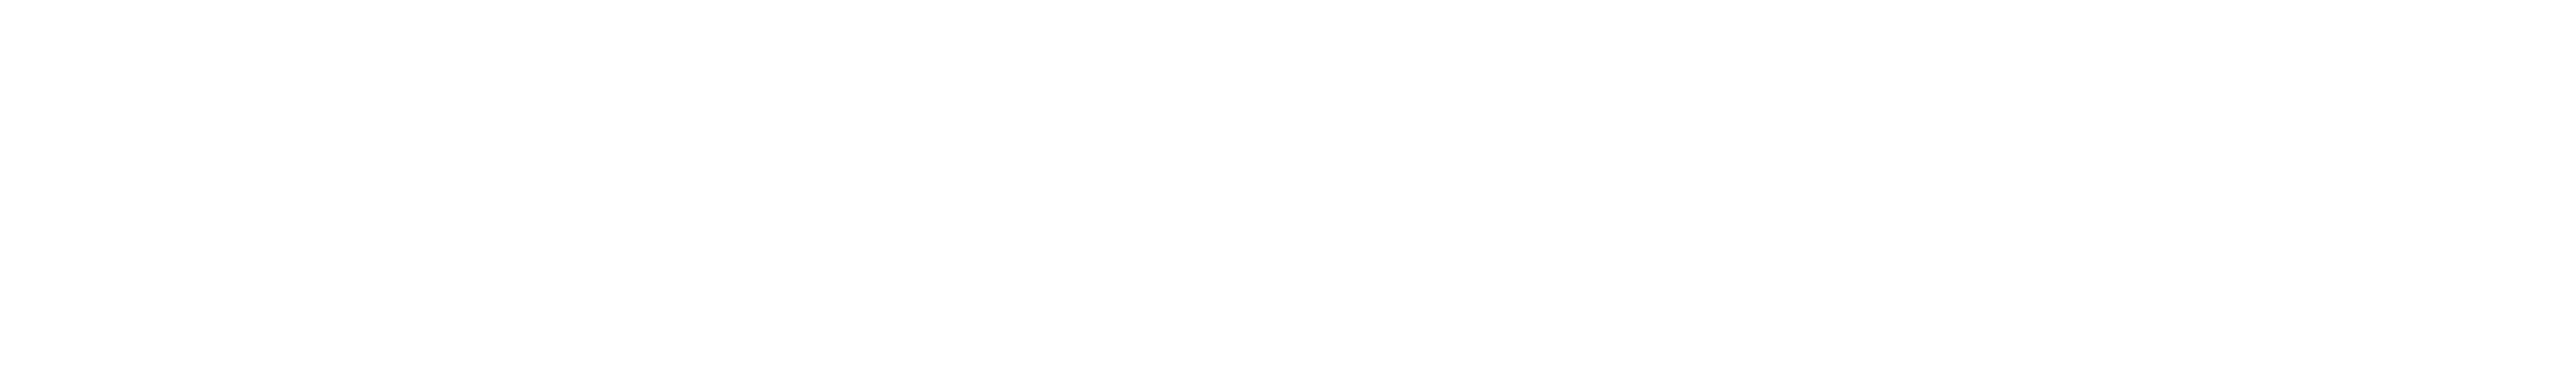 Logo wit Double U Fitlife personal training